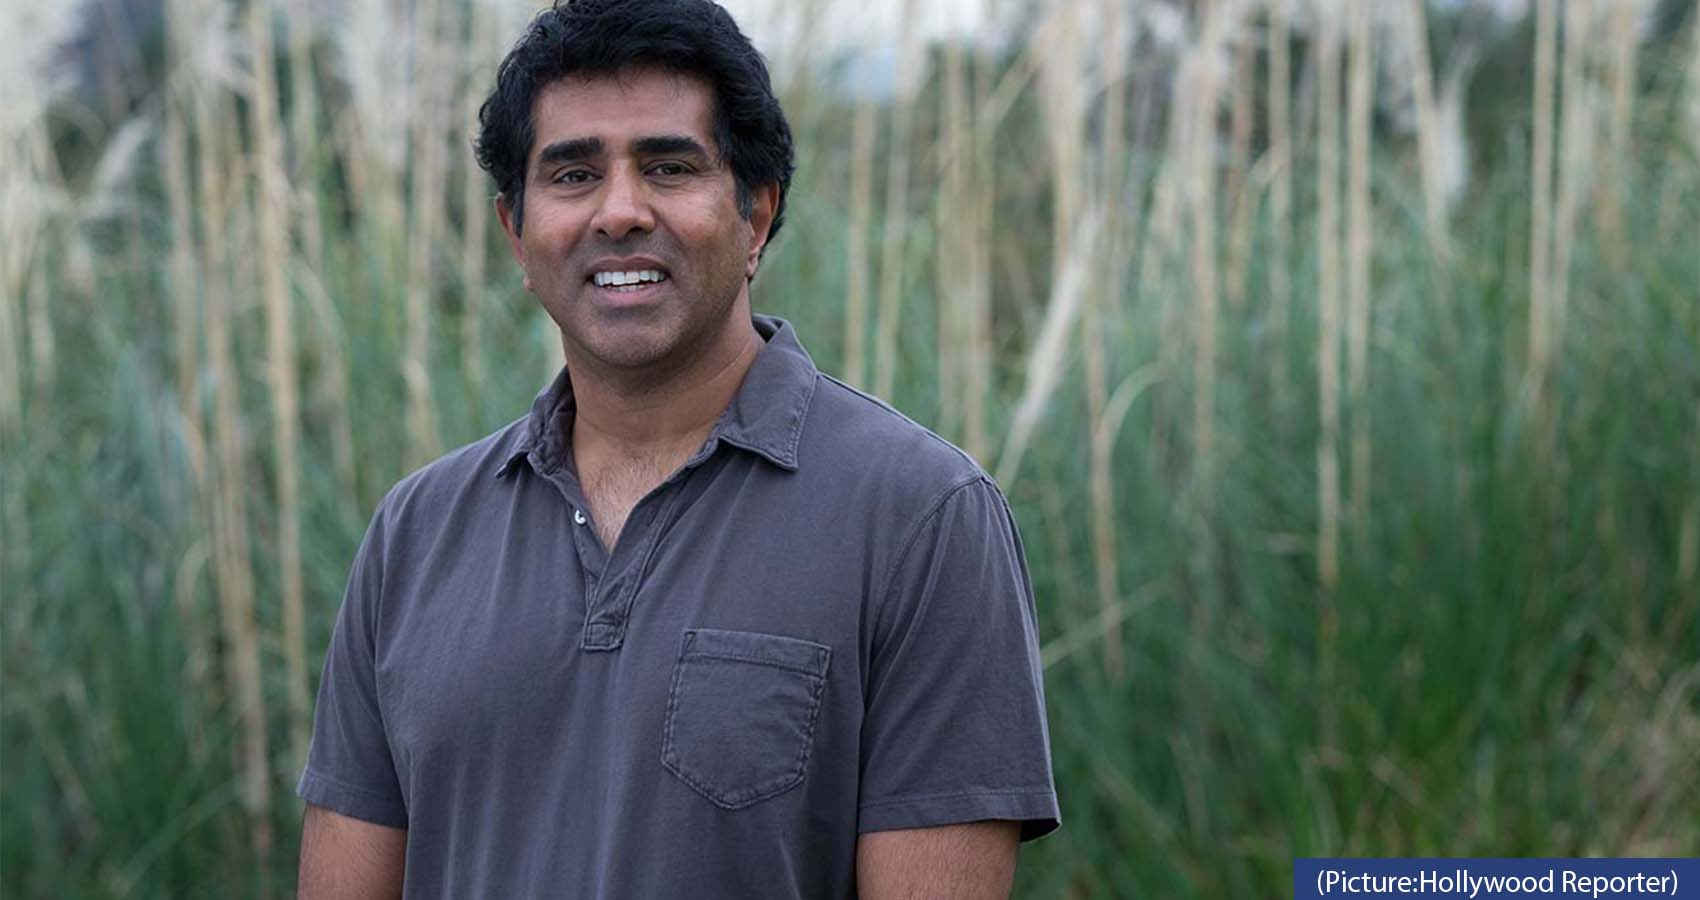 'Easter Sunday,' Jay Chandrasekhar-Directed Family Comedy, Featuring Asif Ali To Be Released By Universal Pictures